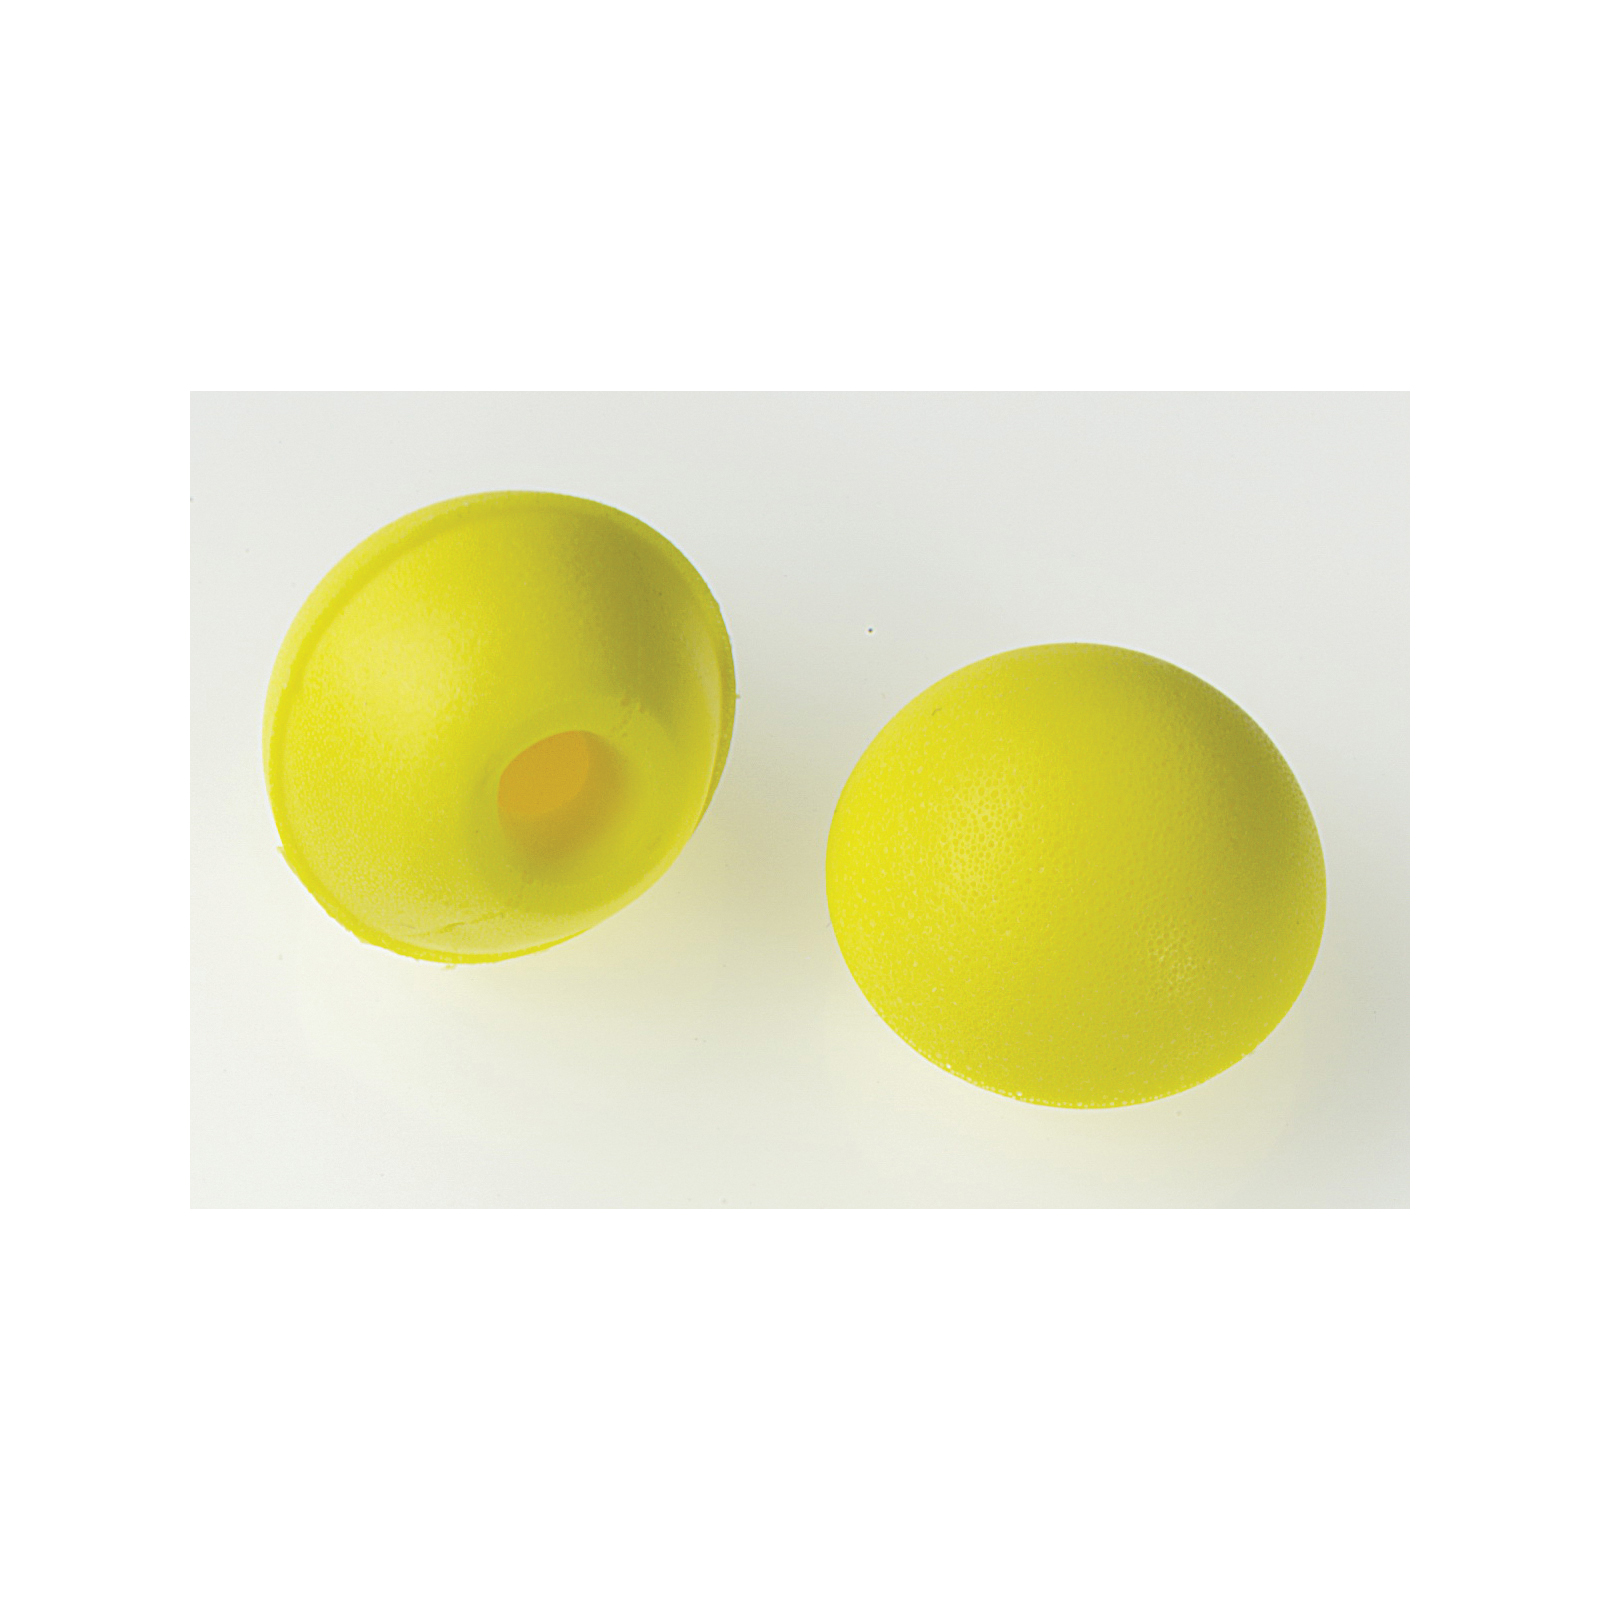 E-A-R™ 080529-19066 Reusable Replacement Pod, For Use With E-A-R Caps™ 200 350-2100 and 321-2101 Hearing Protectors, CSA Class BL